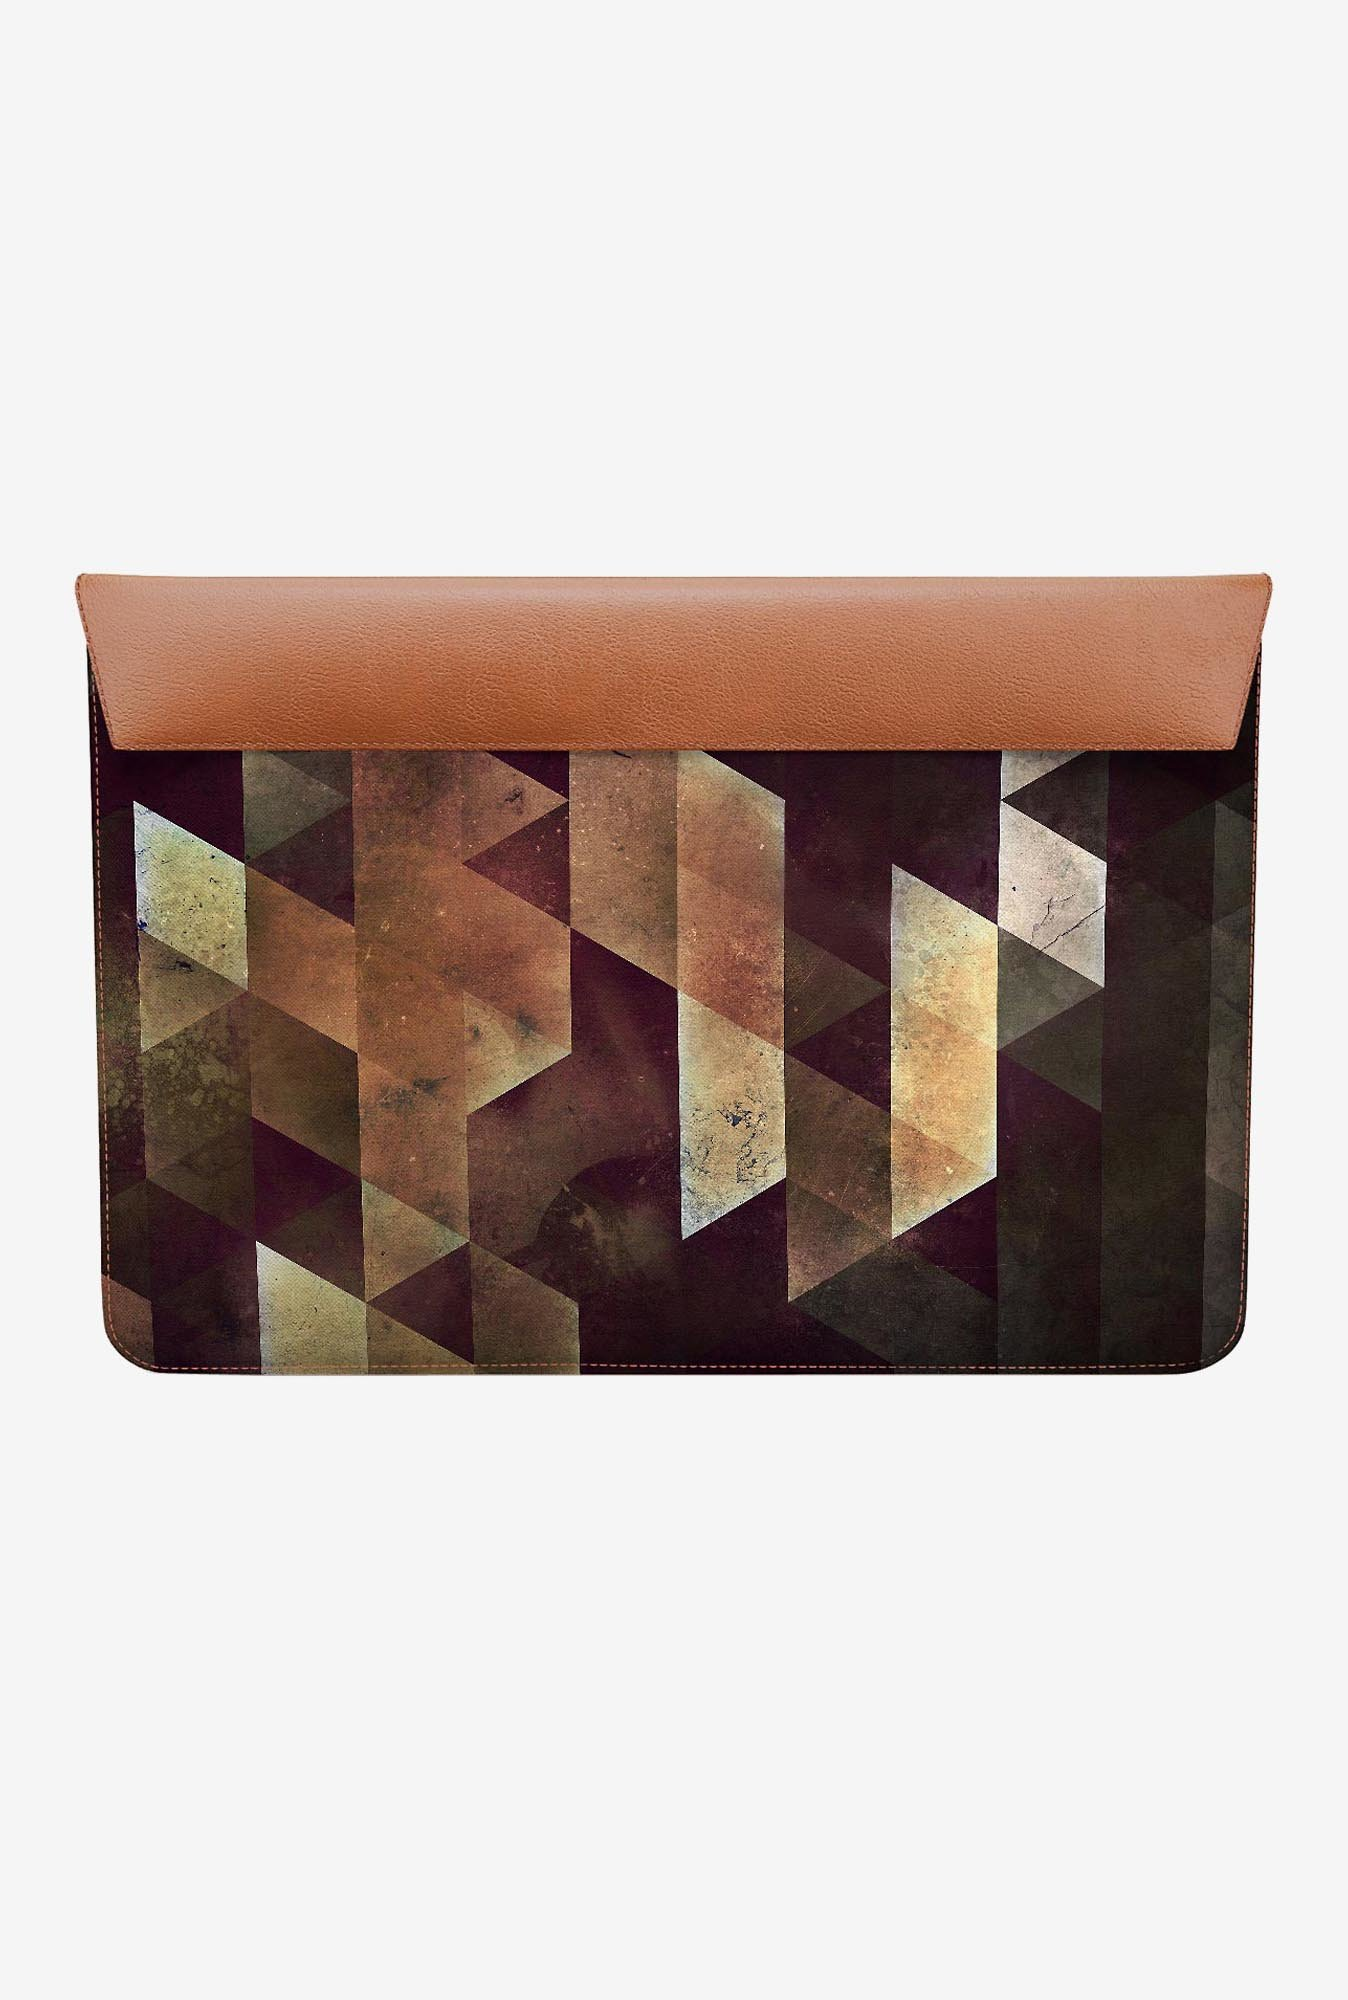 "DailyObjects Hwws Yf Lyyvvs Macbook Air 11"" Envelope Sleeve"